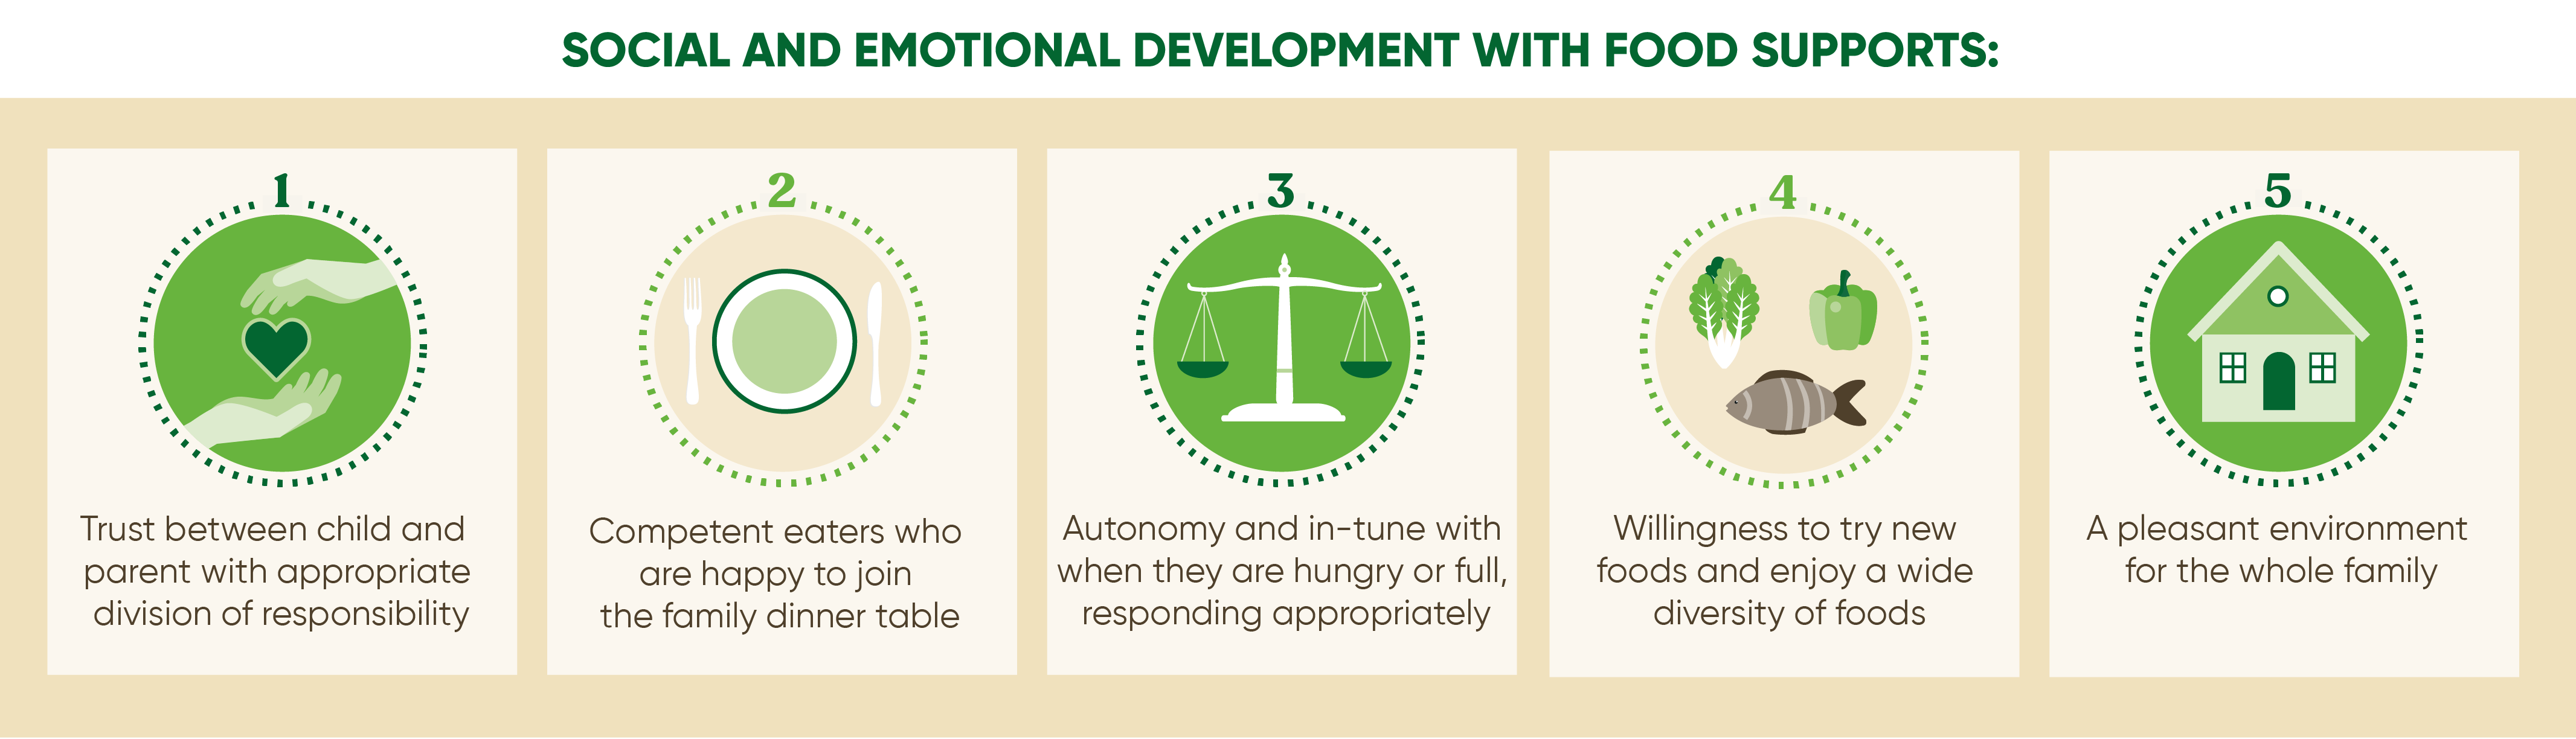 Food supports social and emotional development